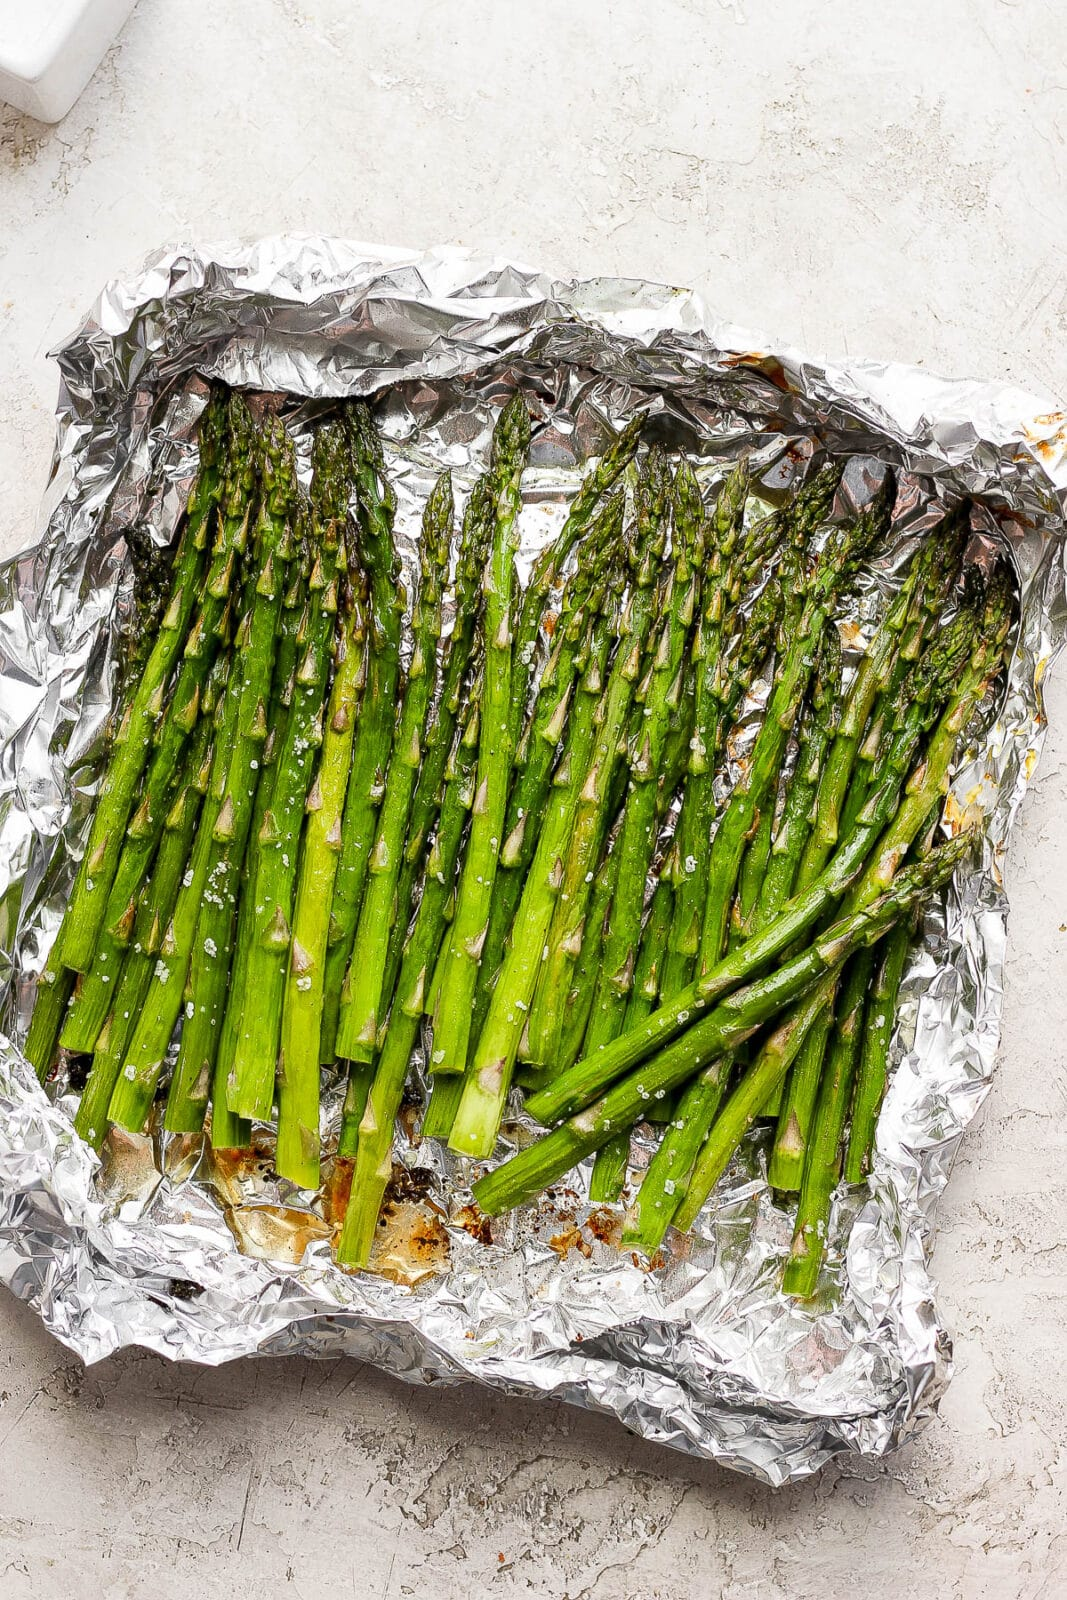 Smoked asparagus in an aluminum foil boat.